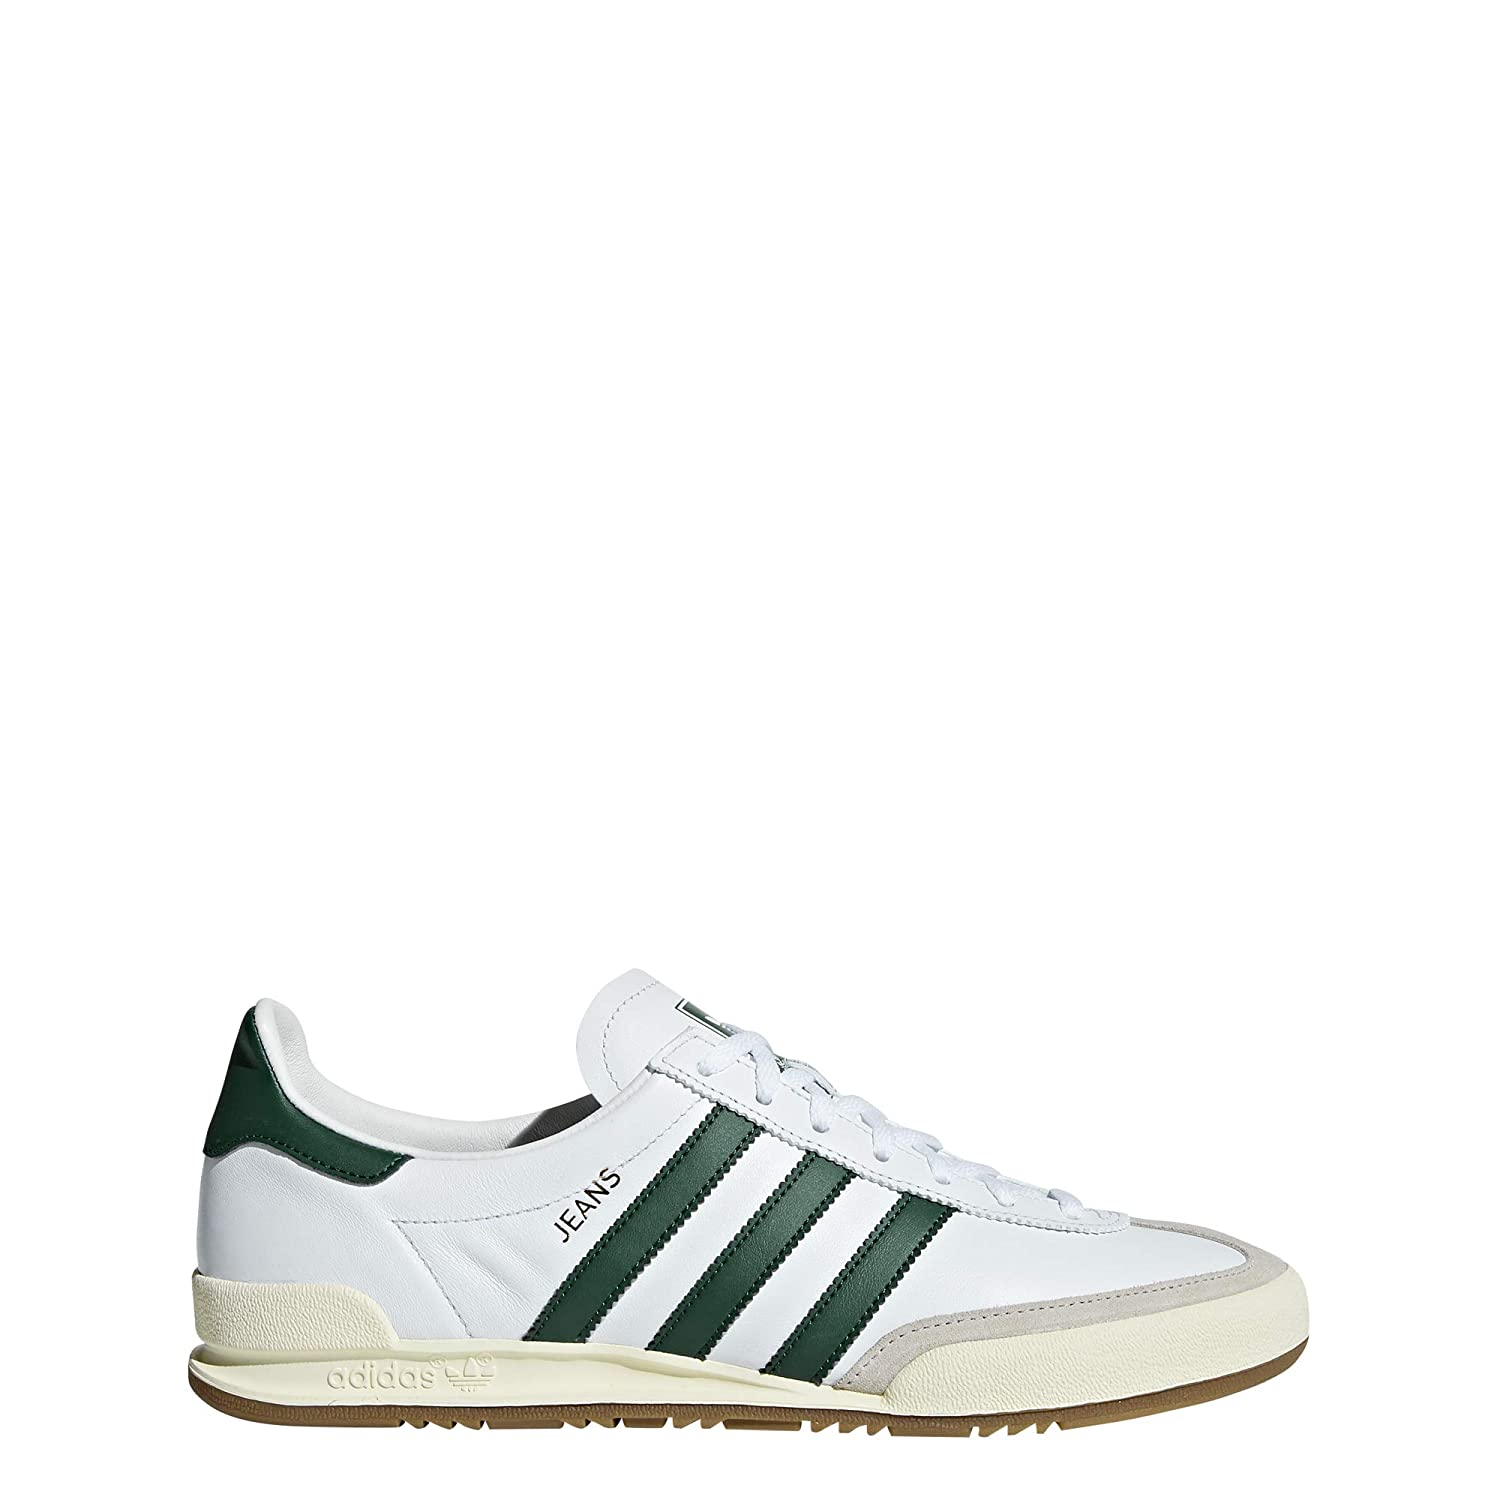 adidas Jeans, Men's Trainers